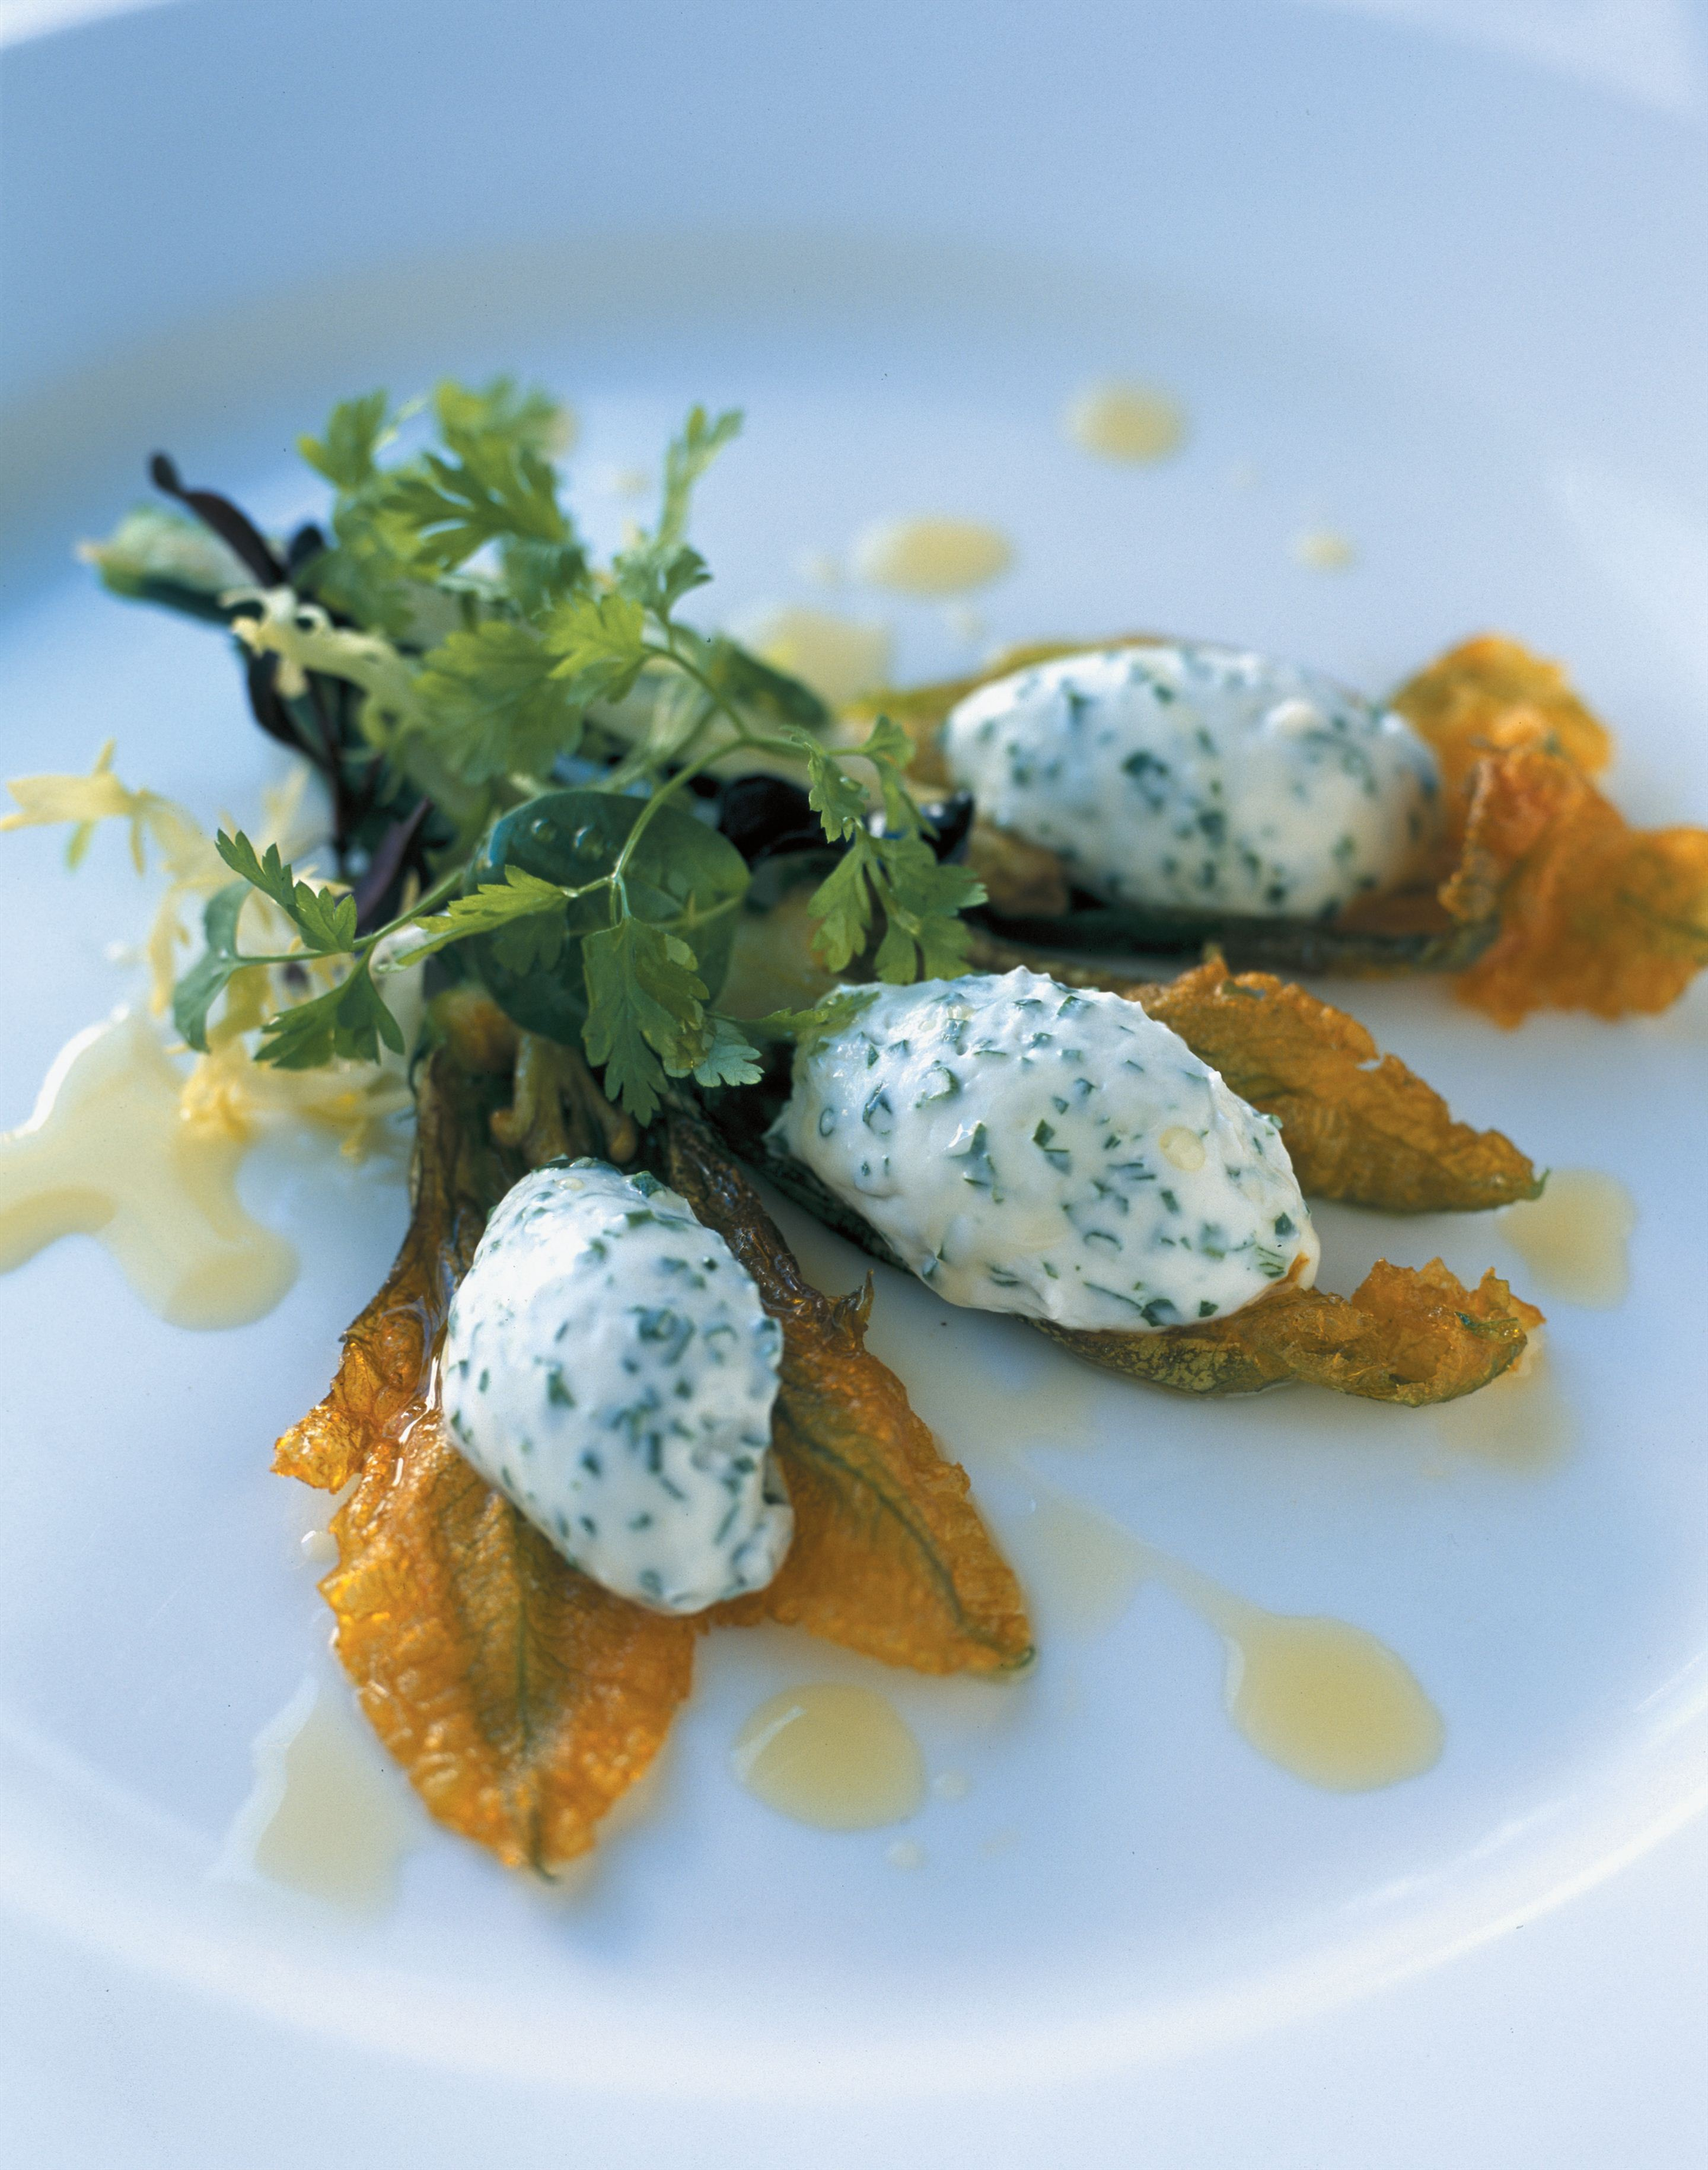 Deep-fried zucchini flowers with chive and shallot-whipped goat's curd and a herb salad